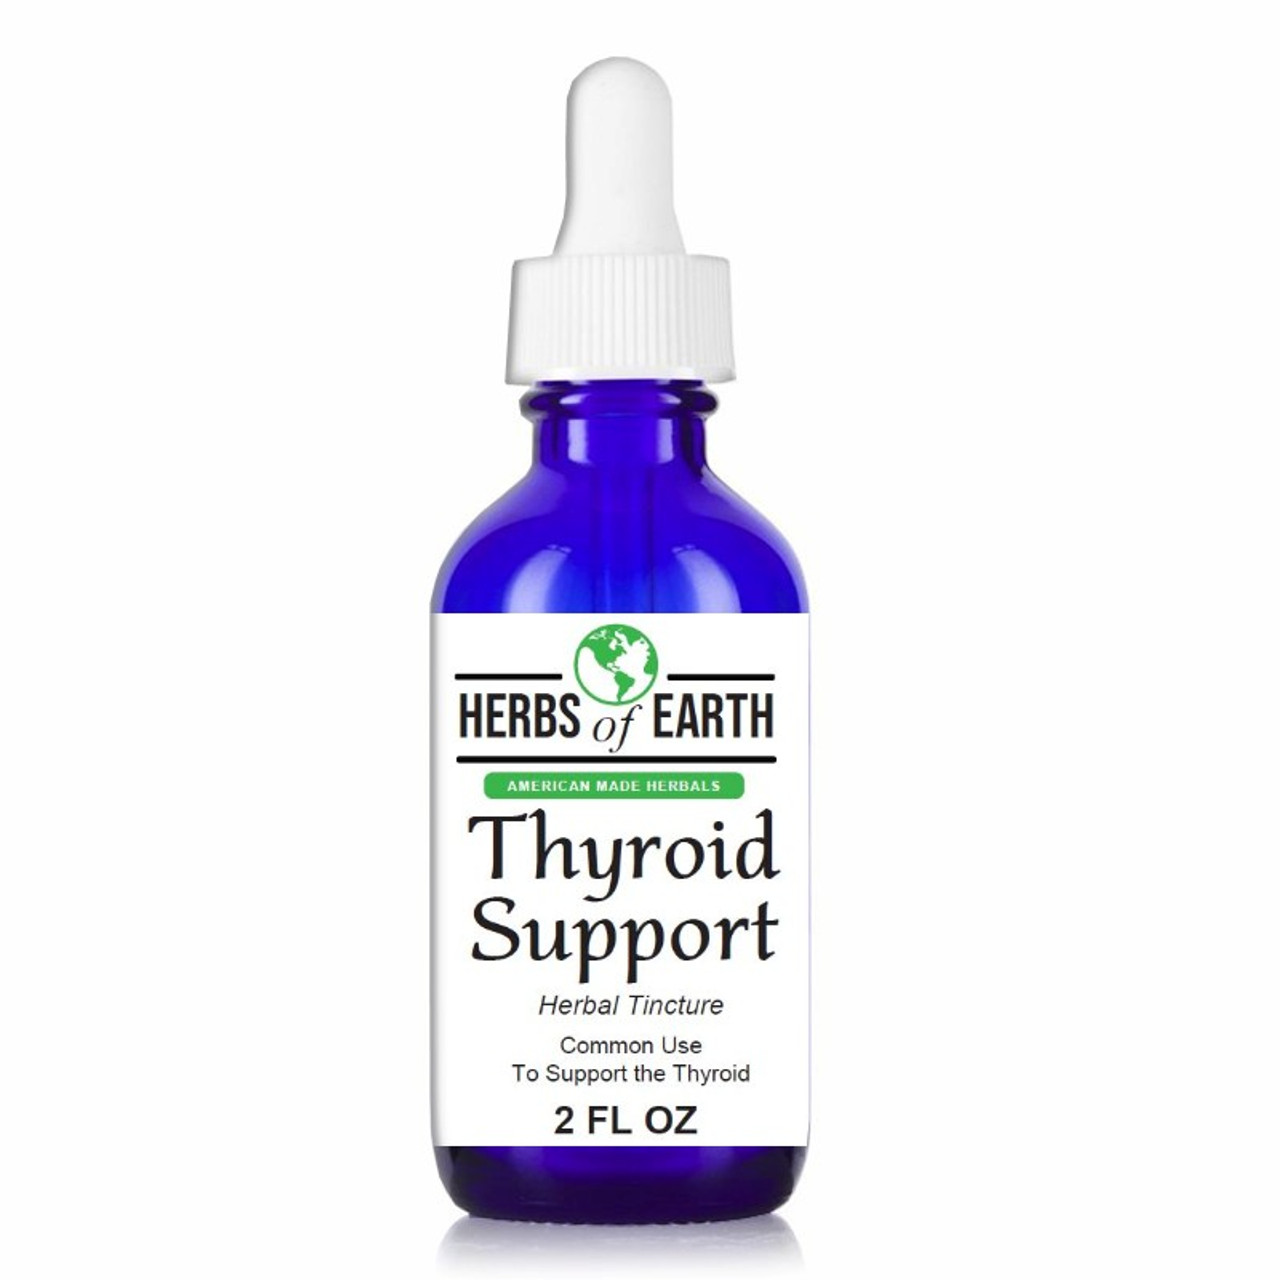 Thyroid Support by Herbs of Earth